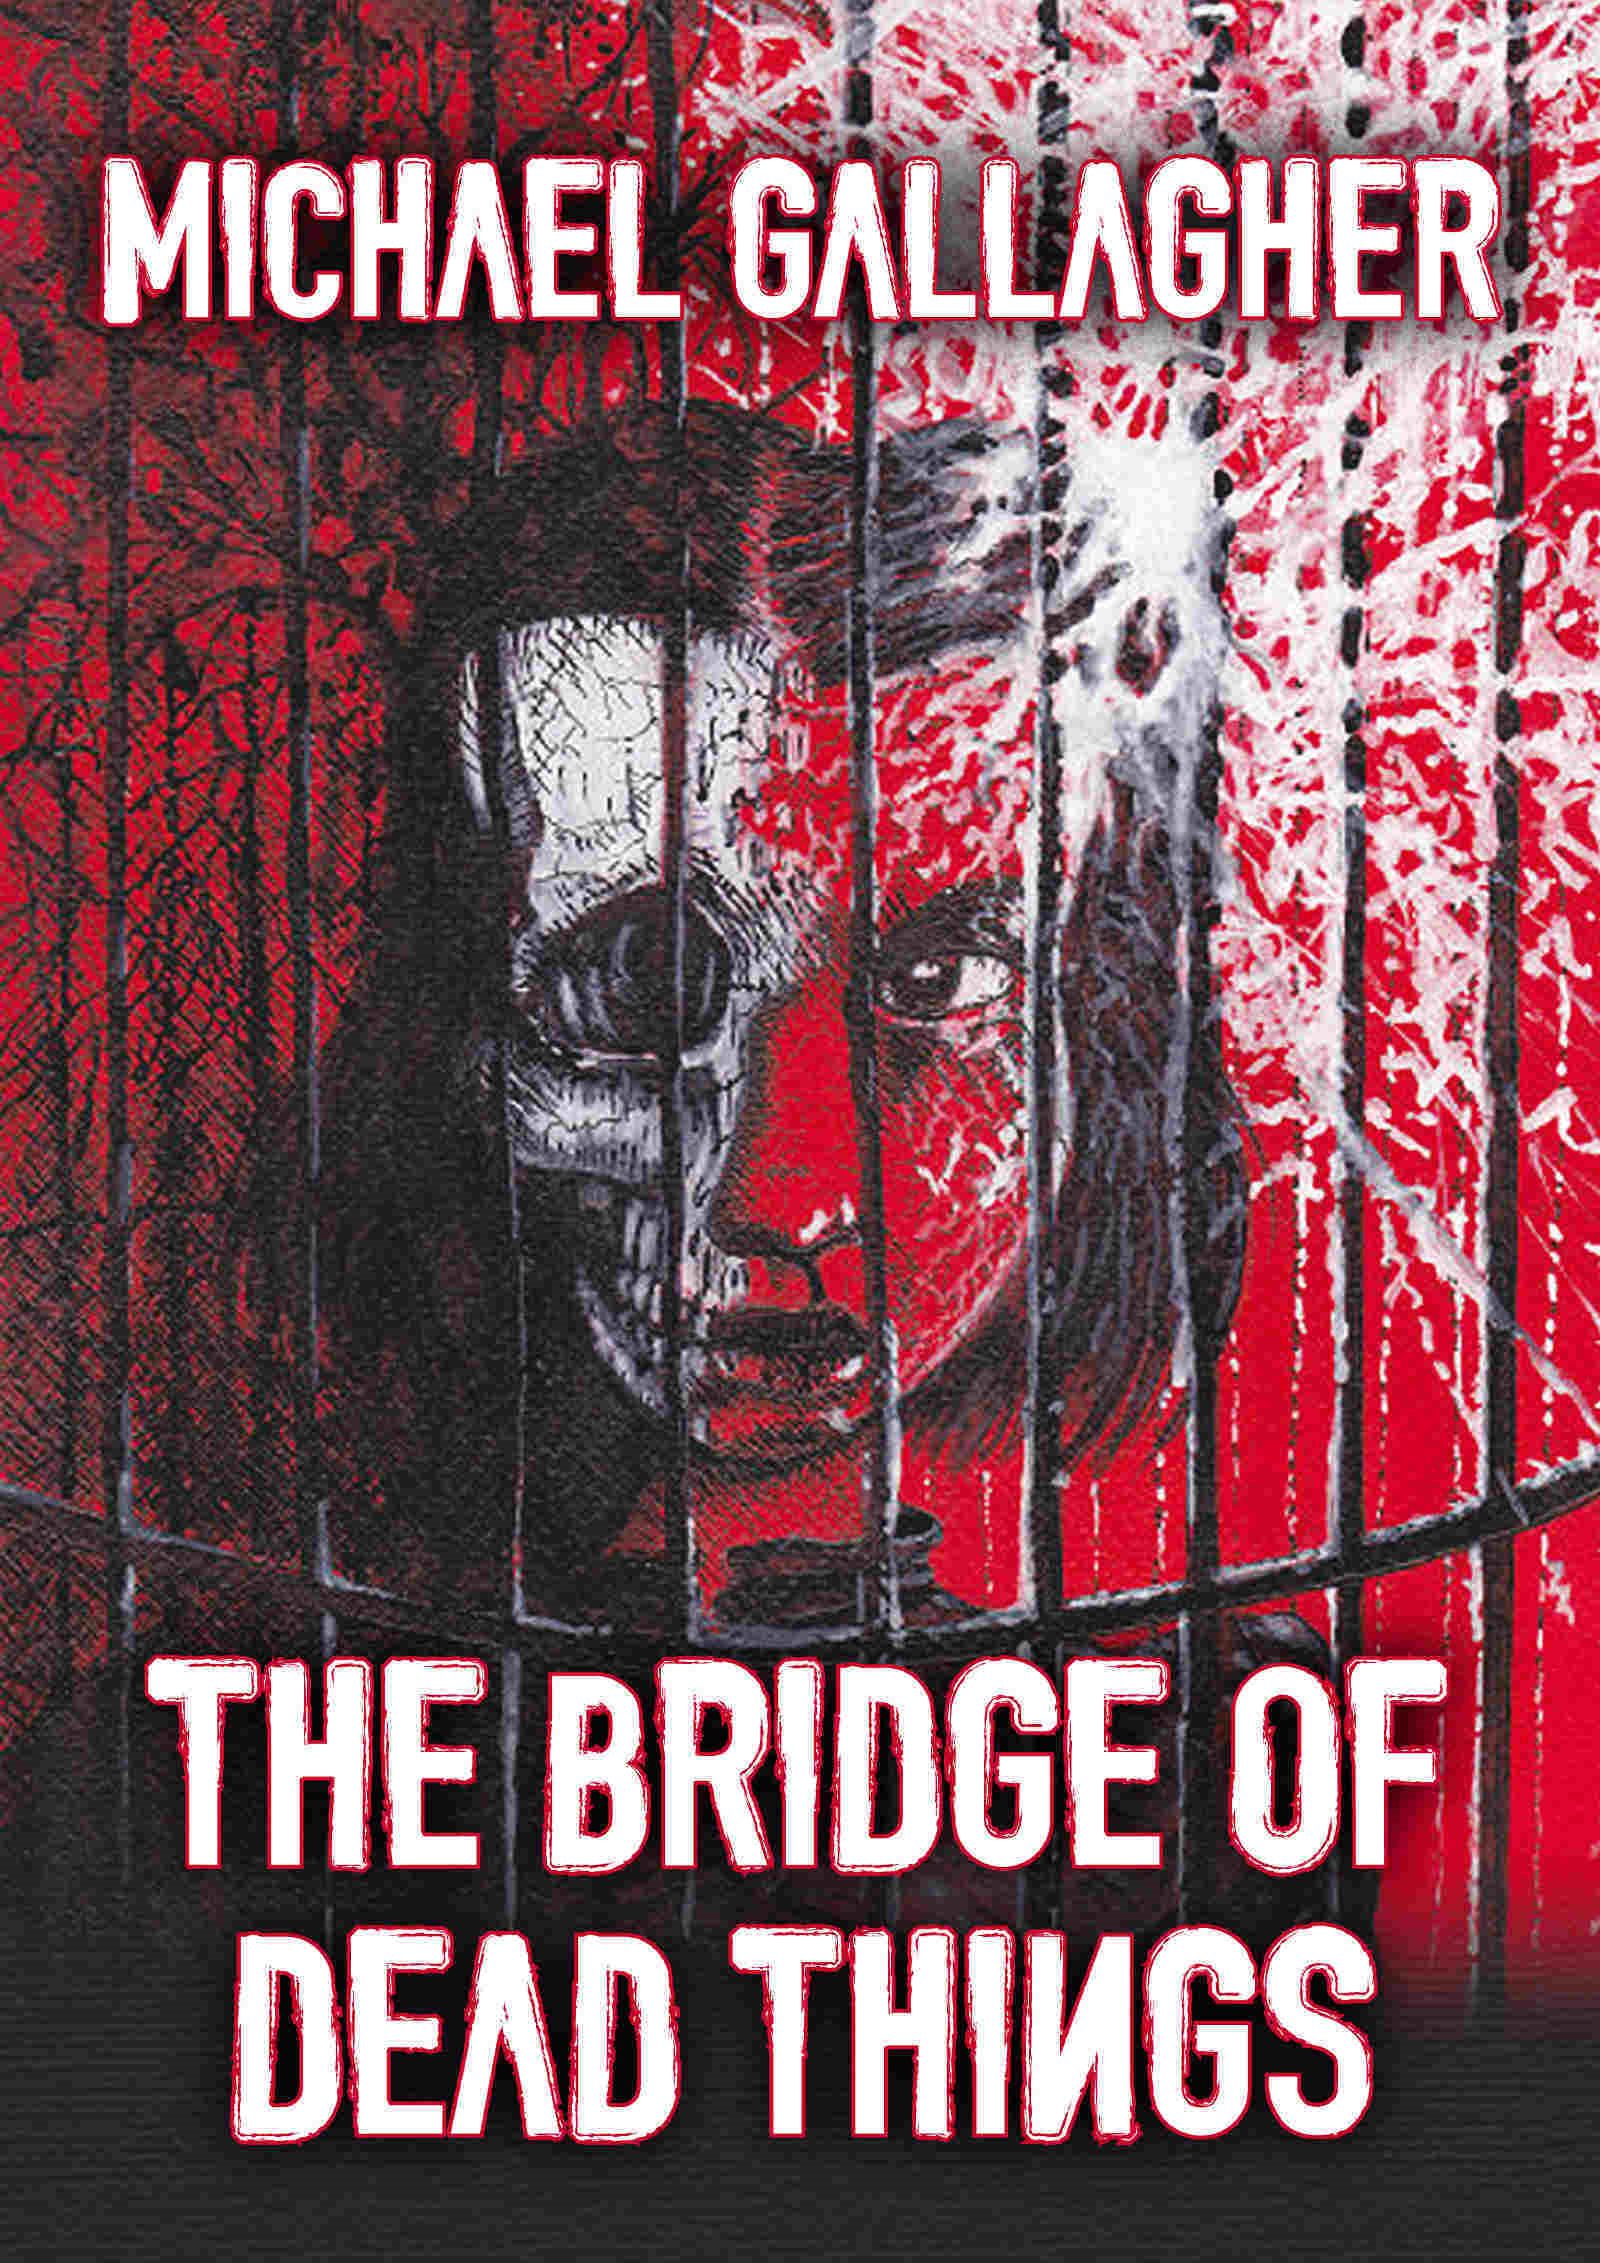 The Bridge of Dead Things